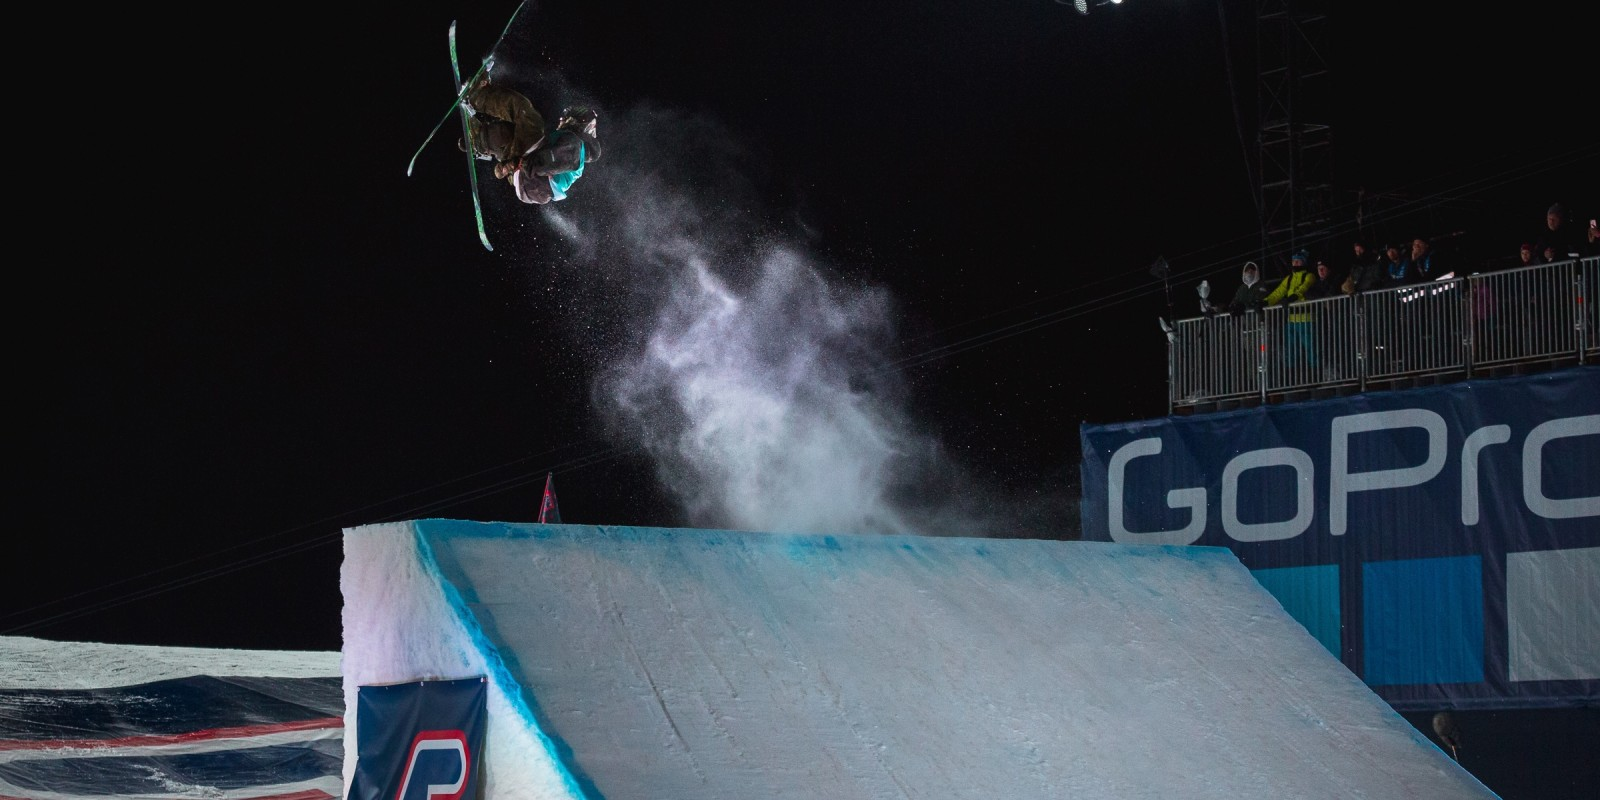 Monster athlete at the 2017 X Games in Hafjell, Norway